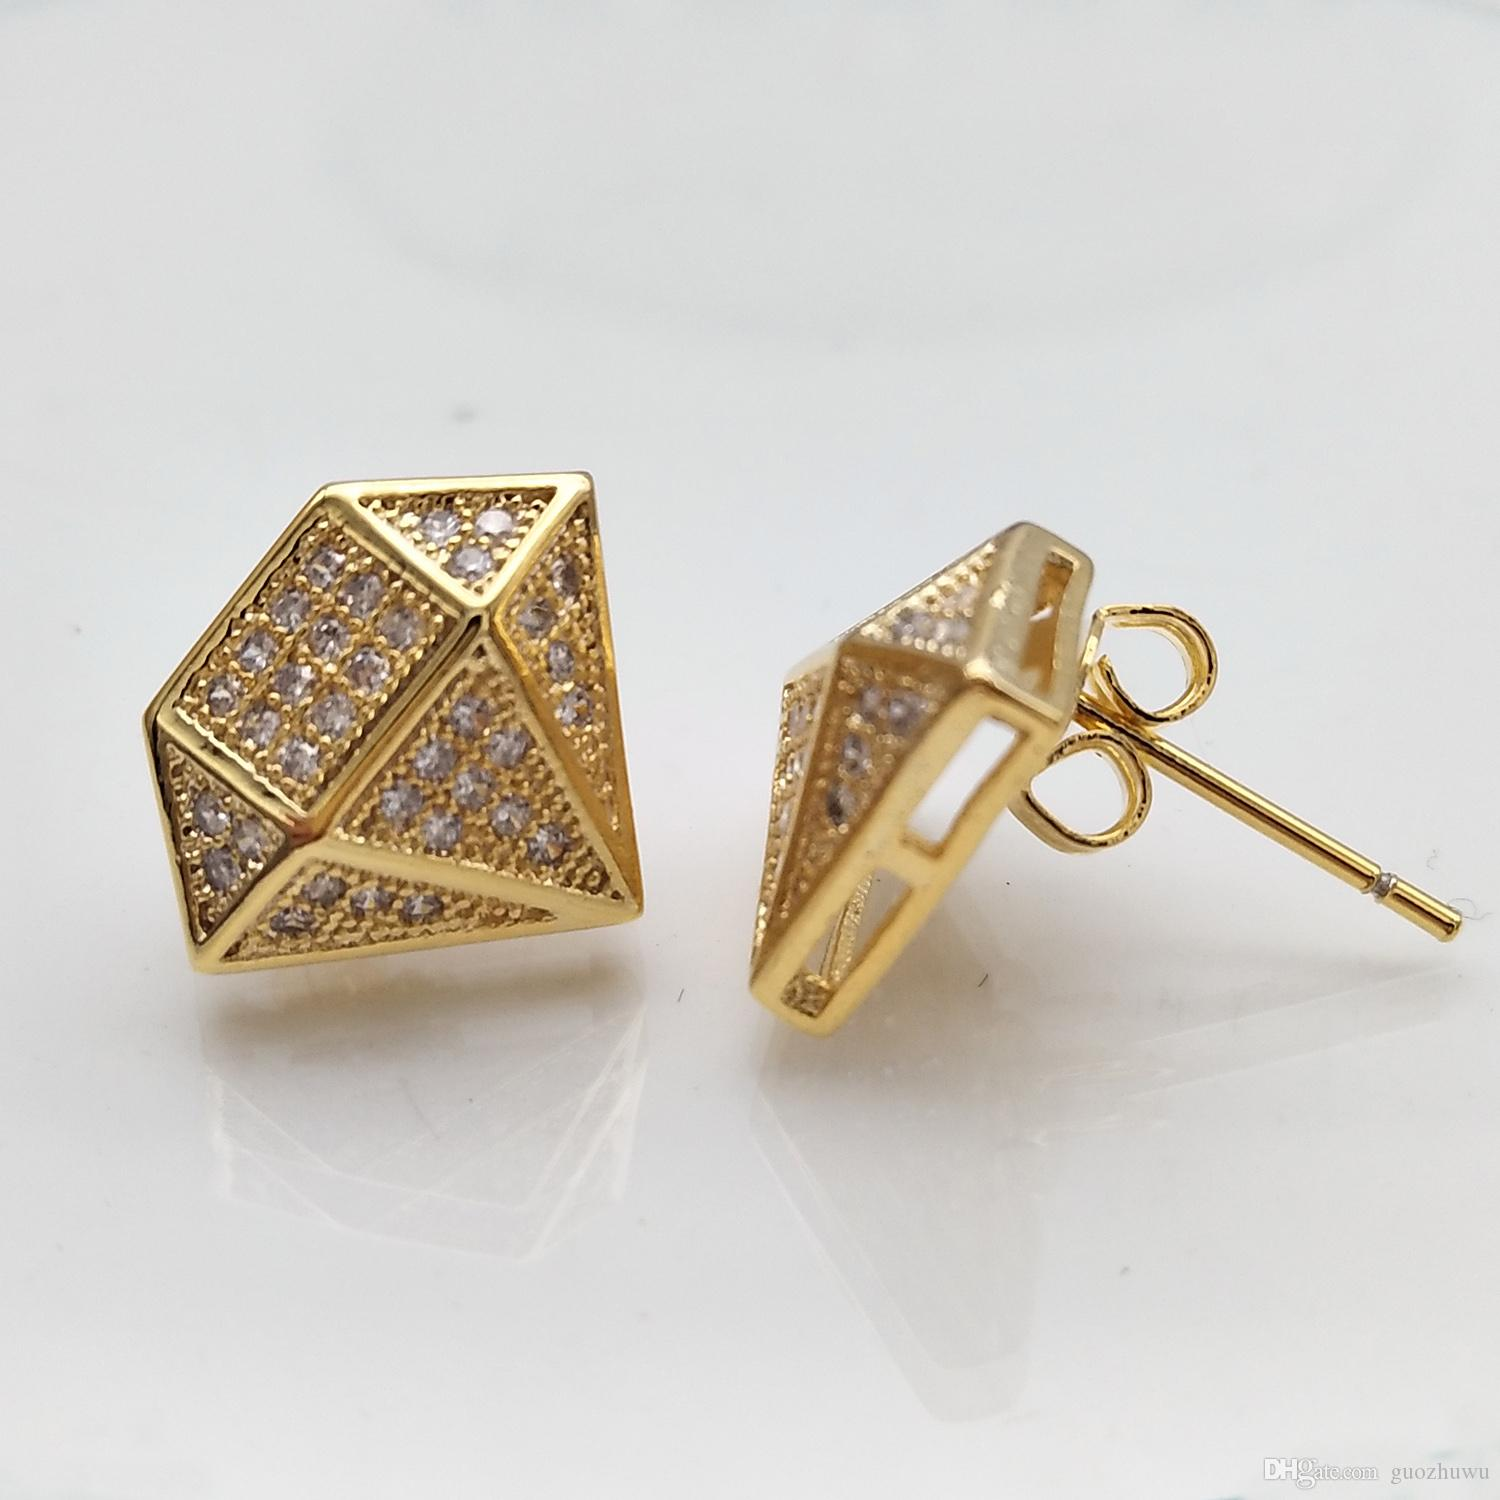 New Fashion 18K Gold and White Gold Princess Cut Diamond Mens Earring Studs personalized Hip Hop CZ Cubic Zirconia Stud Earrings Jewelry